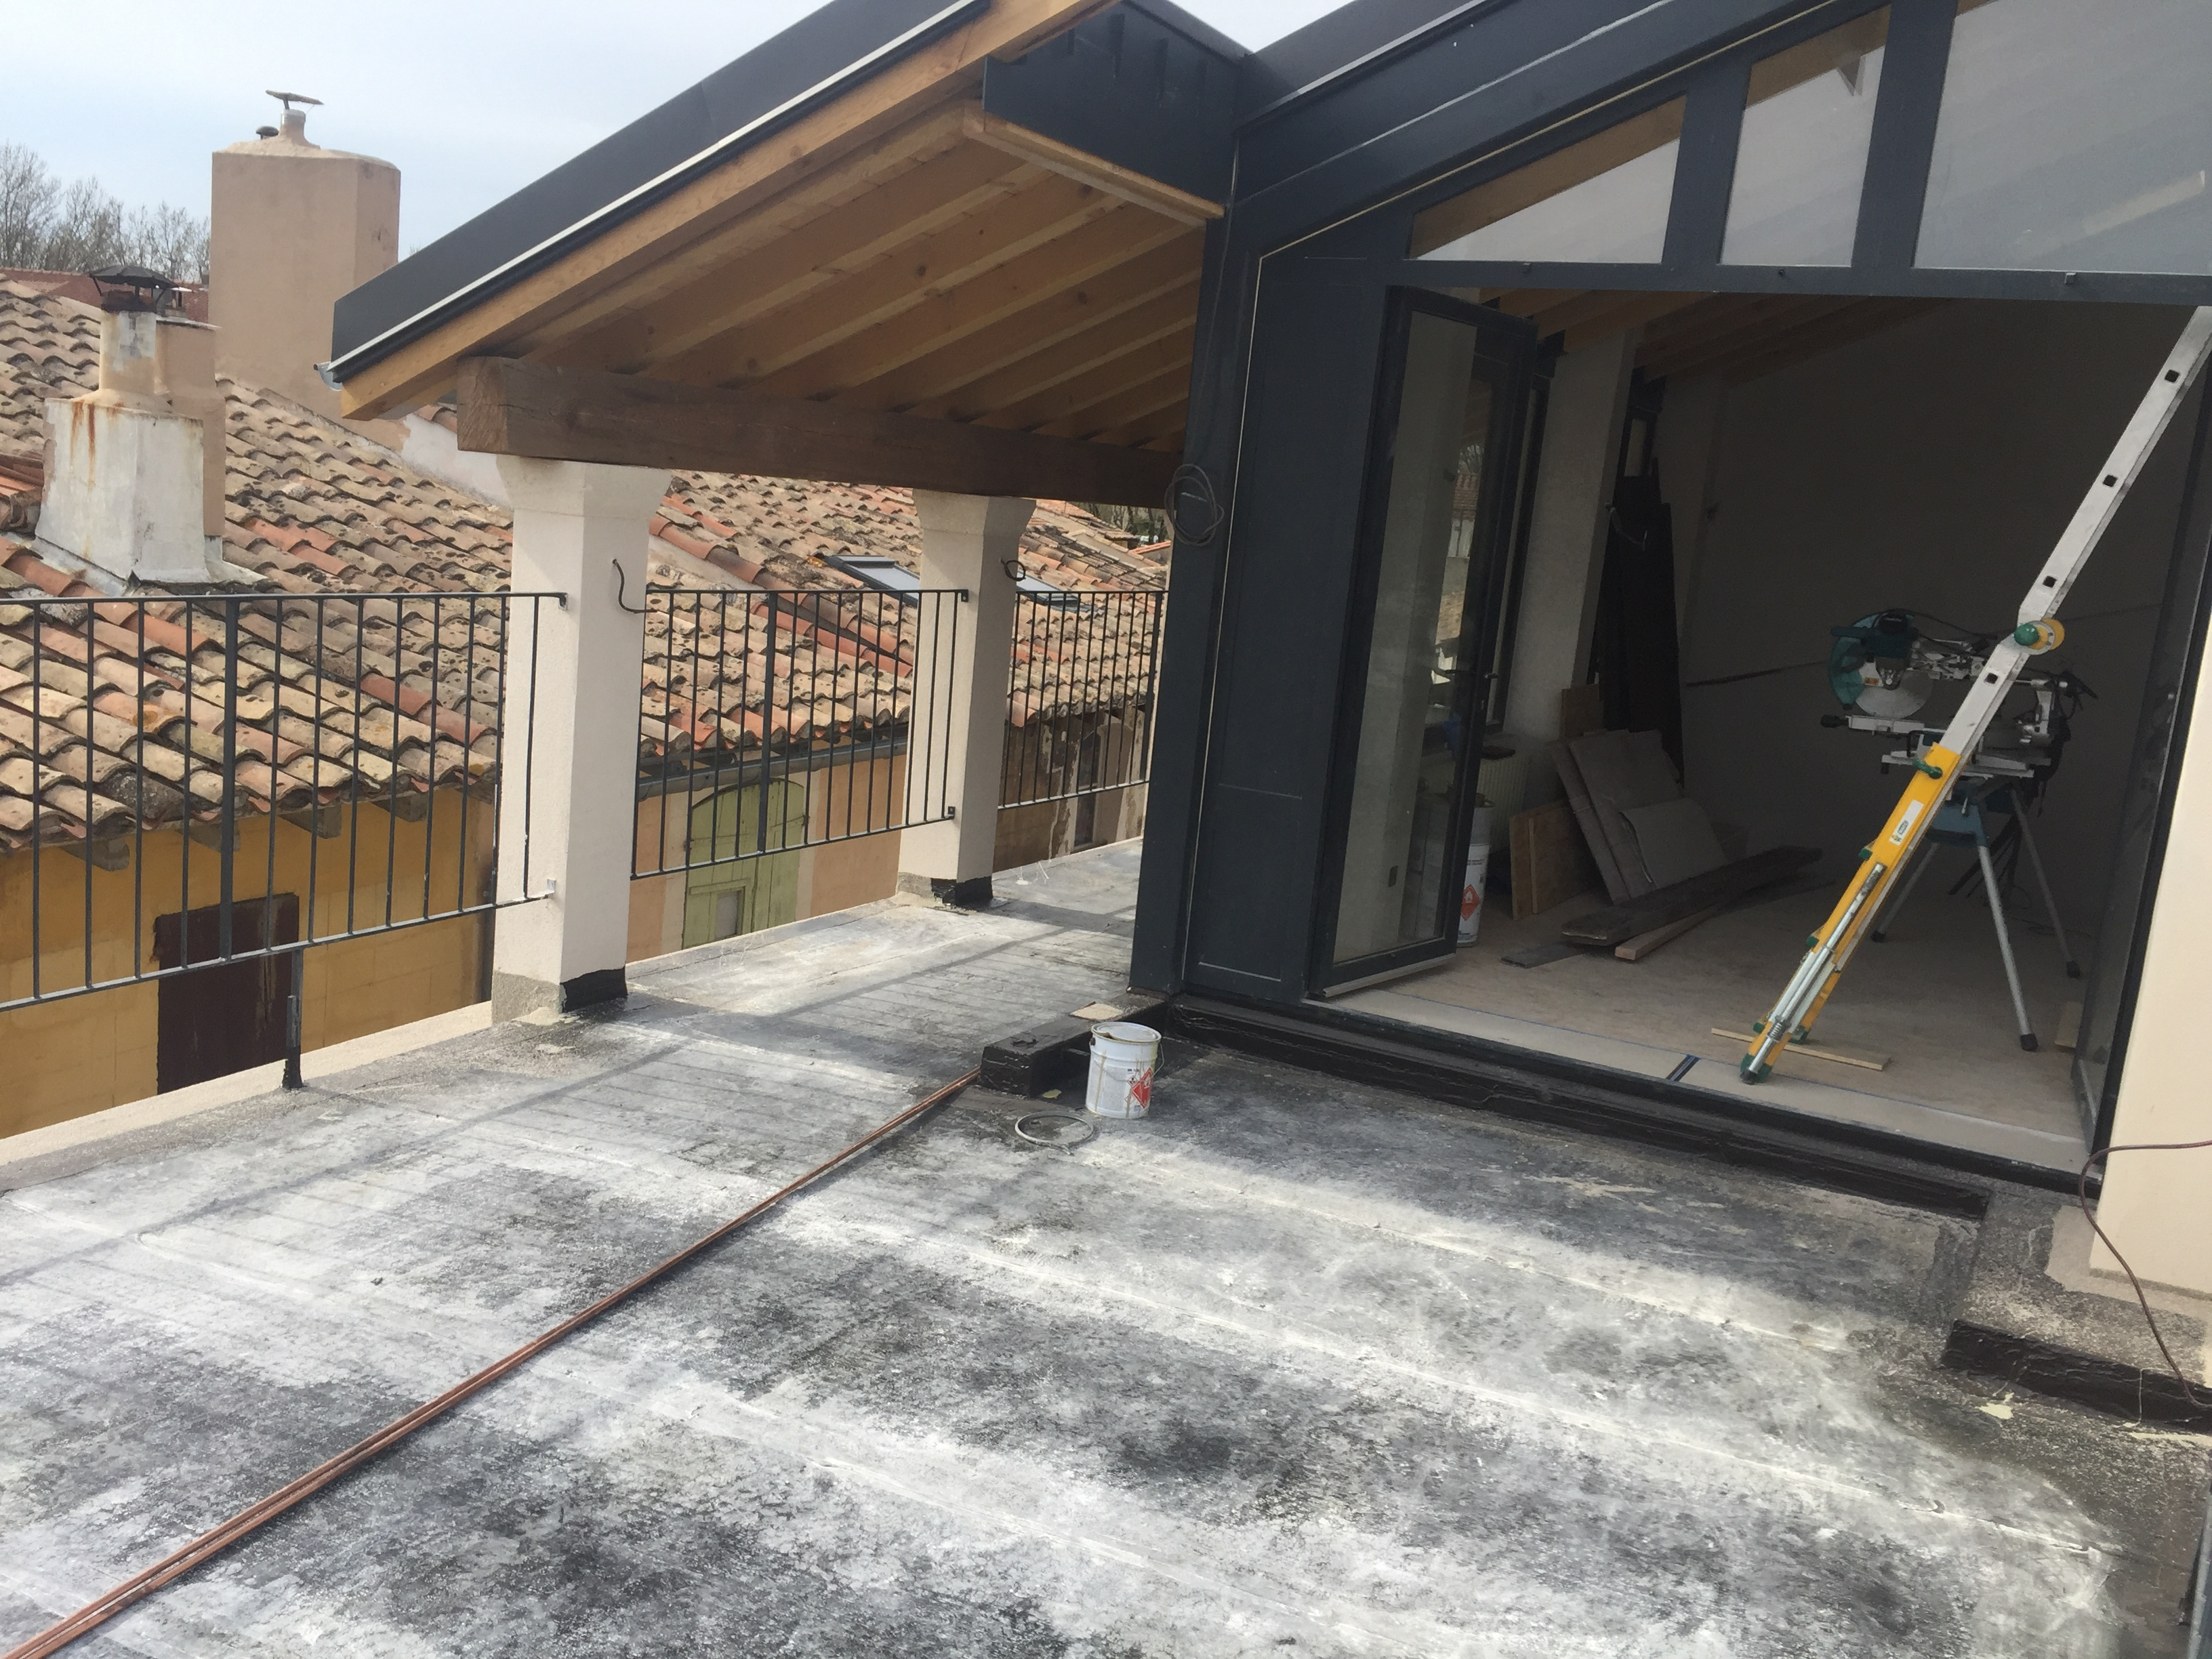 Toiture Terrasse Bois Accessible Terrasse Bois Accessible Wraste